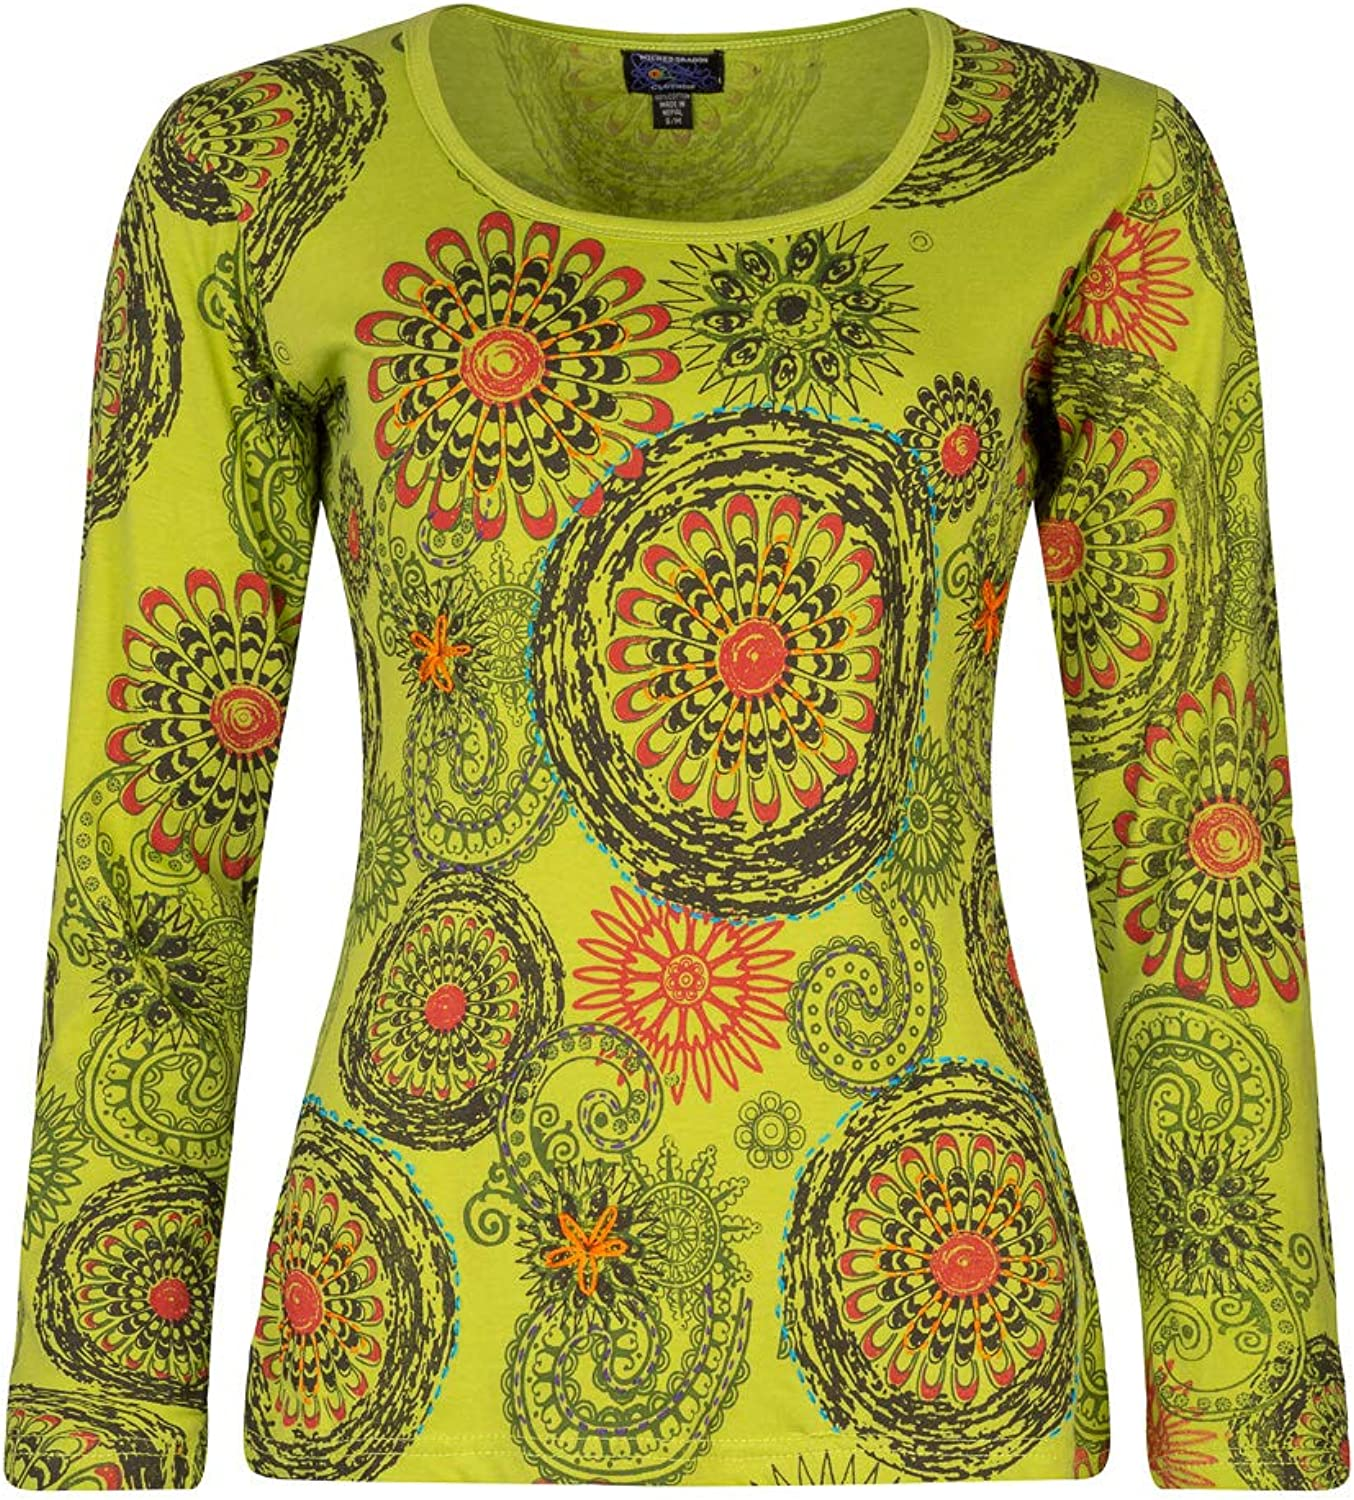 New Embroidered Sleeveless Funky Pixie Top up to Plus Size